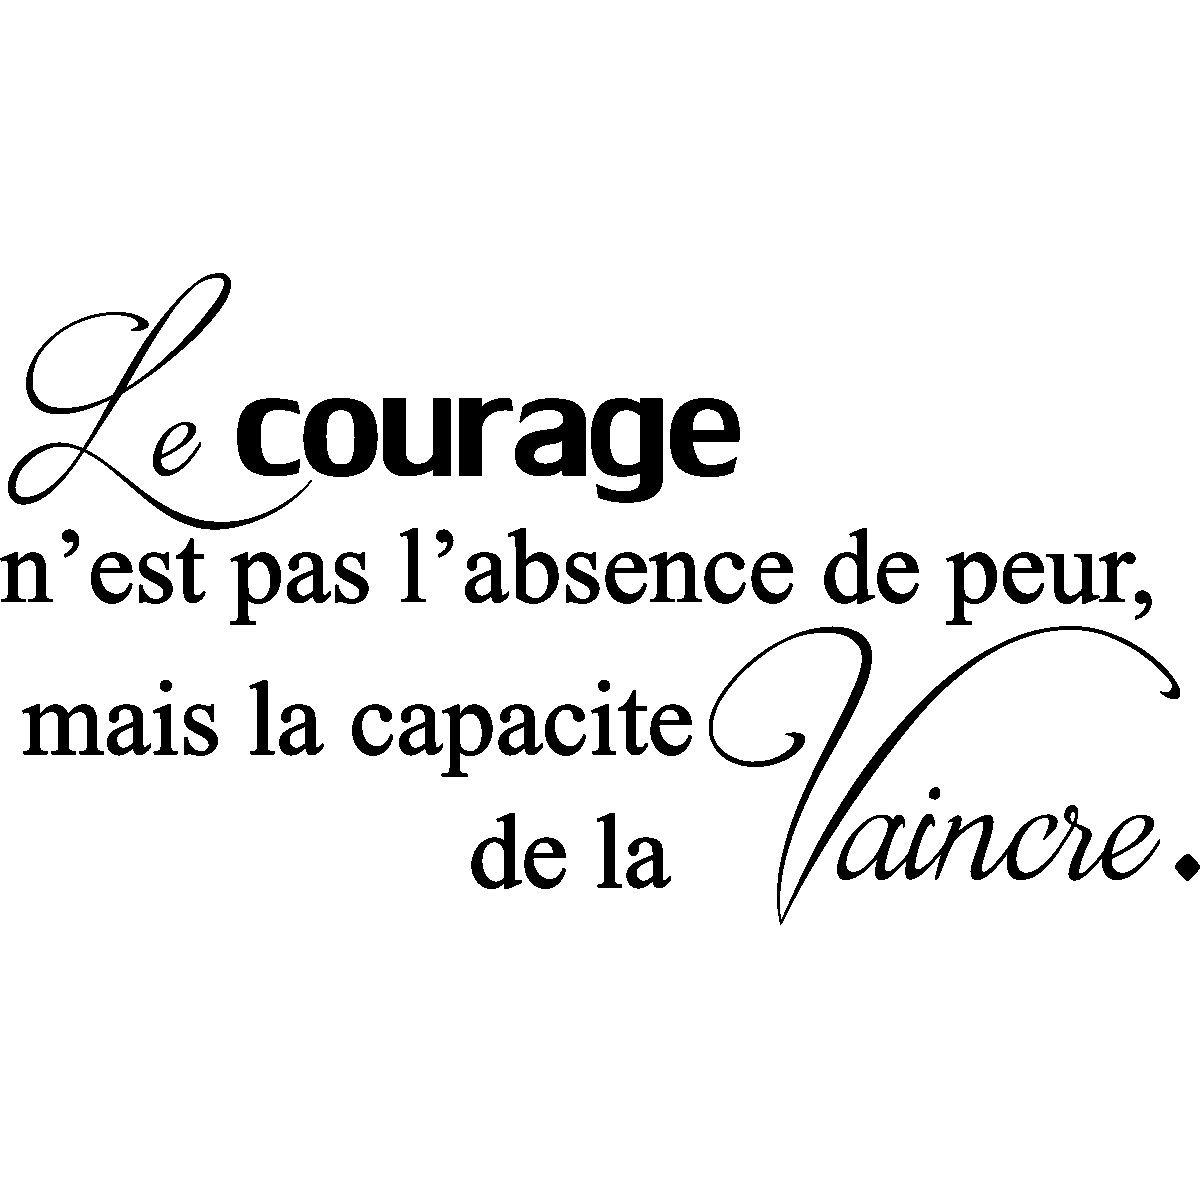 Sticker Citation Le Courage N Est Pas L Absence De Peur Stickers Citations Fran 231 Ais Ambiance